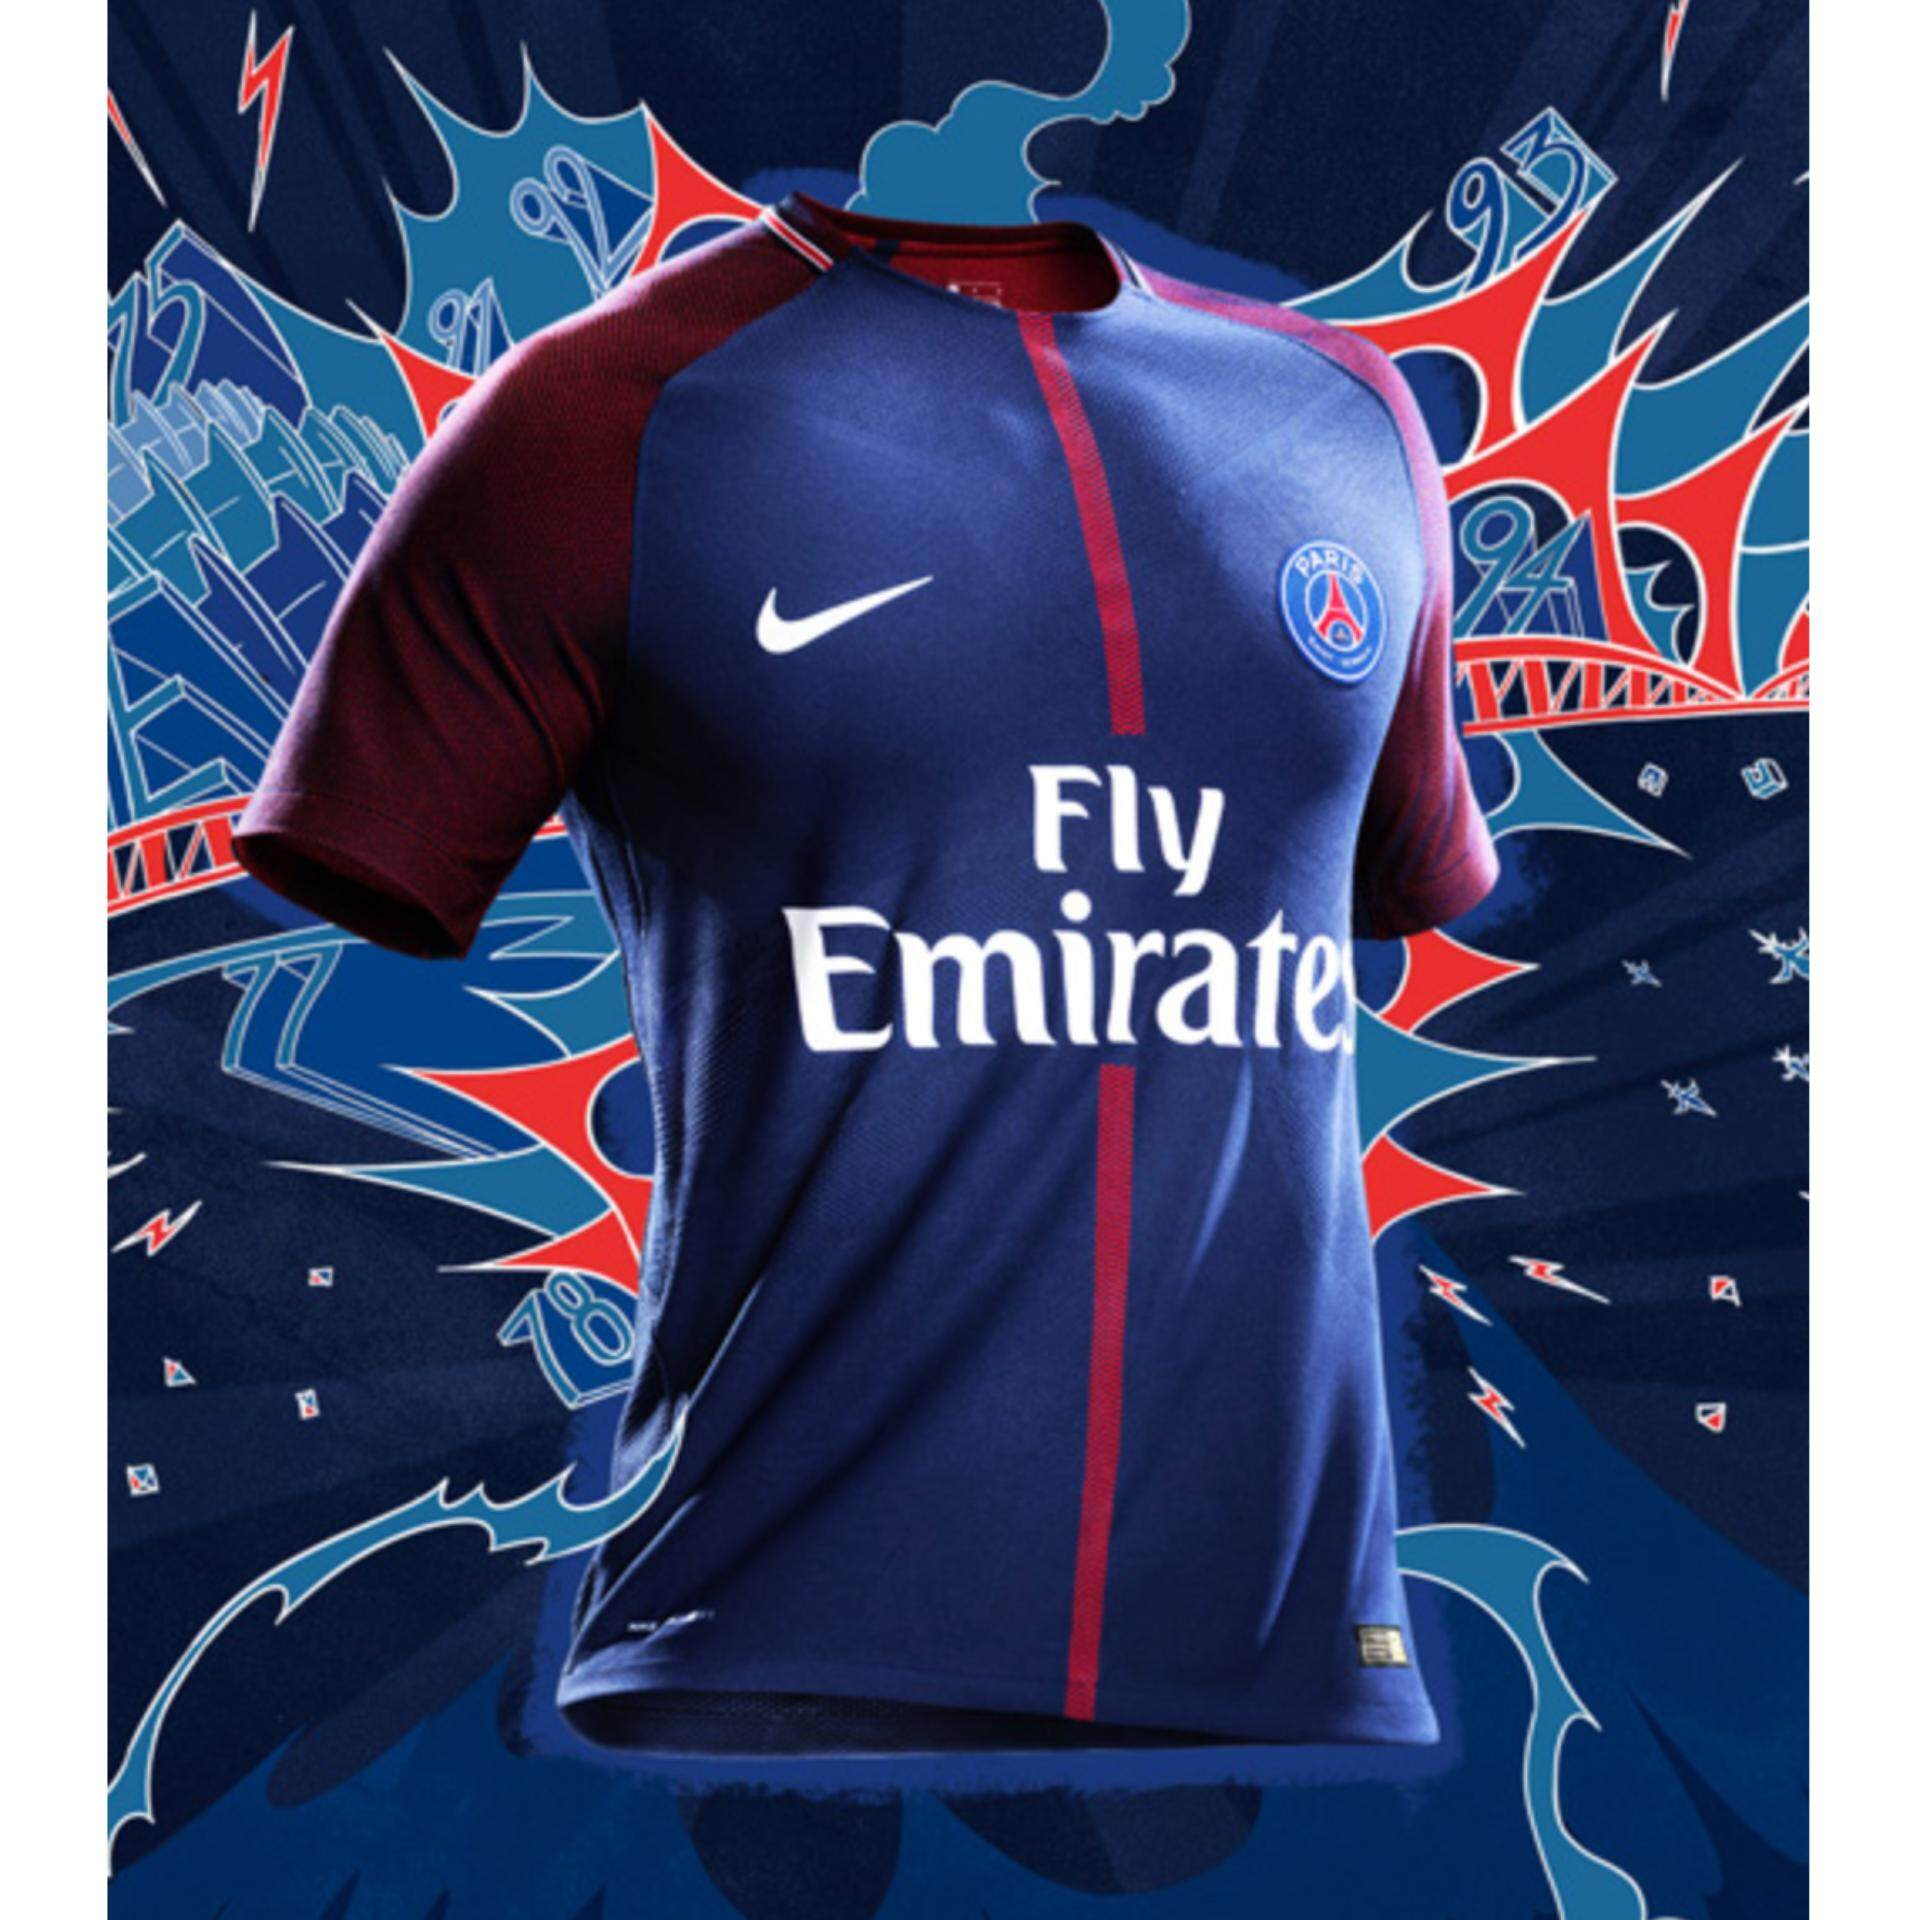 Promo Paris St Germain S Home Jersey For The 2017 18 Season Intl